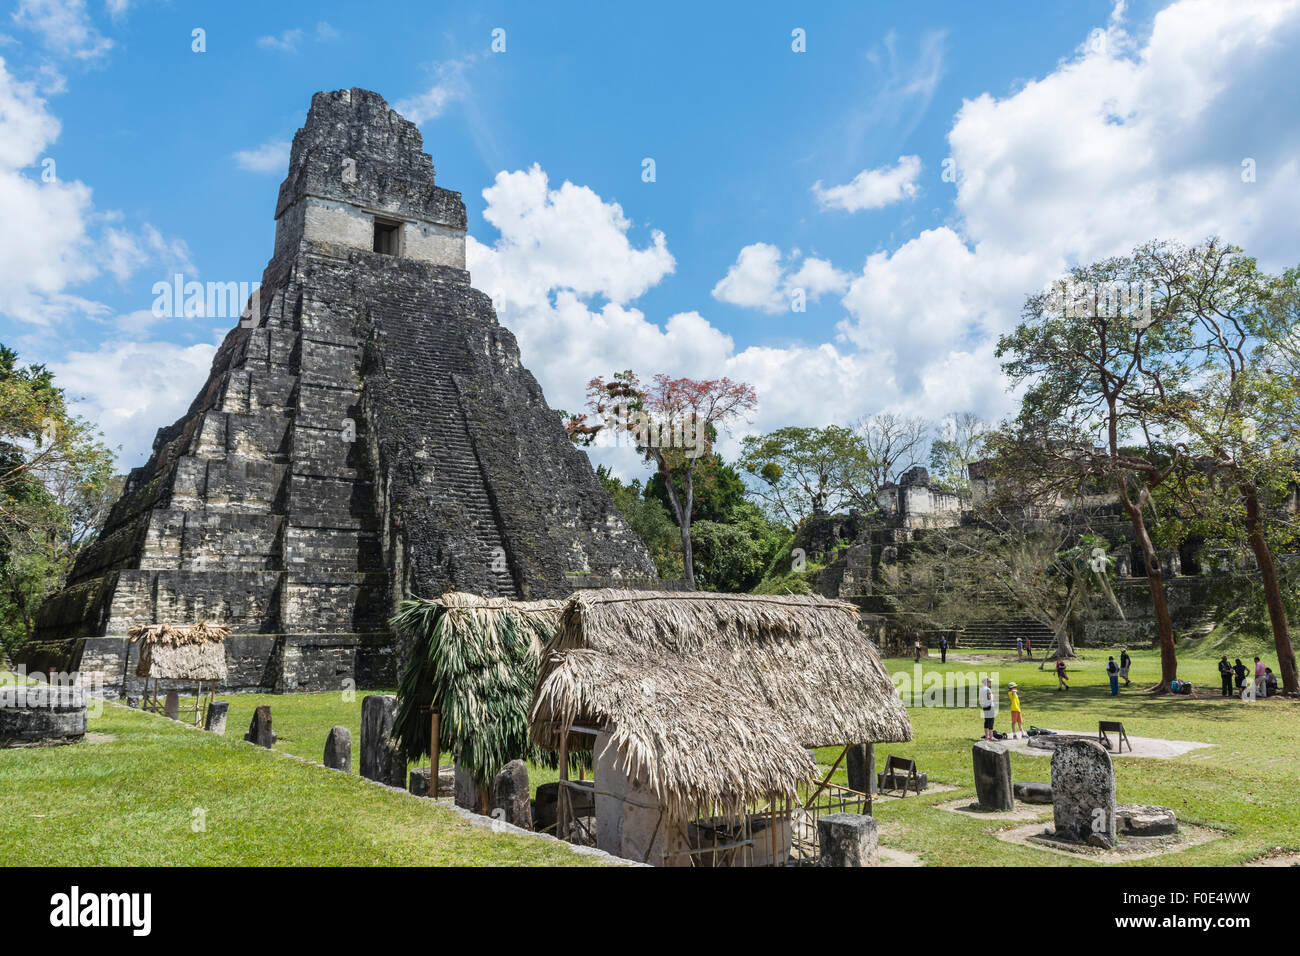 Tikal National Park in Guatemala - Stock Image